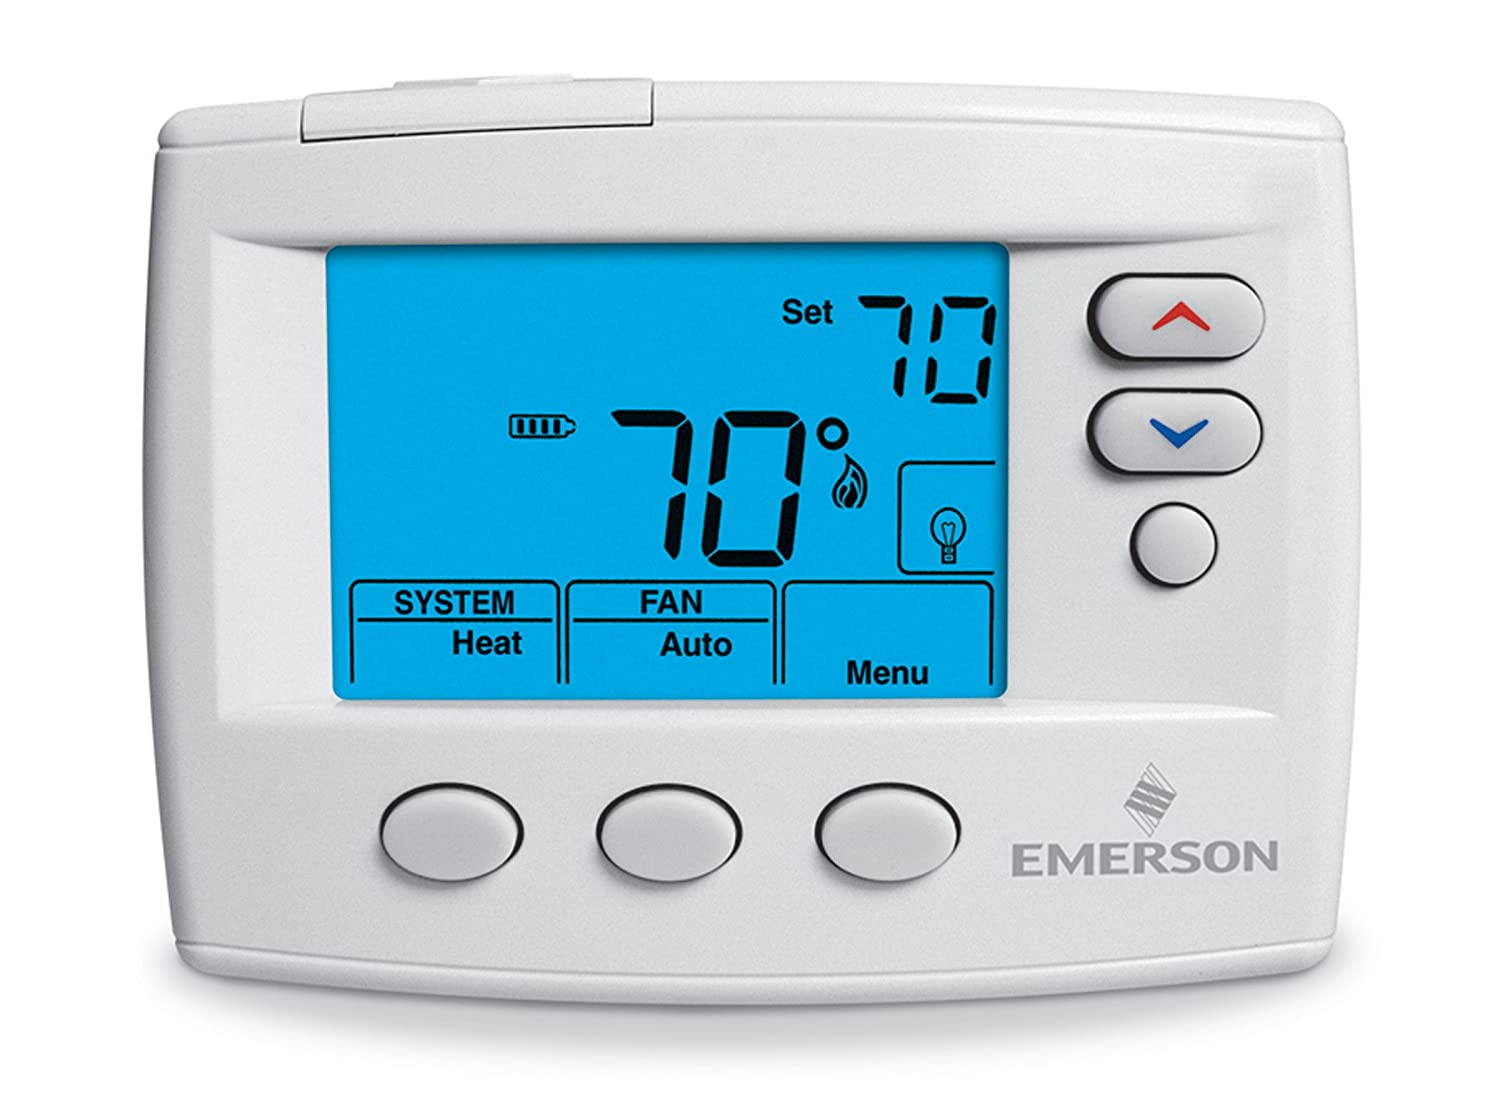 81w%2BvF7knGL._SL1500_ emerson 1f86 0471 single stage, non programmable thermostat, 24 Thermostat Wiring Color Code at virtualis.co